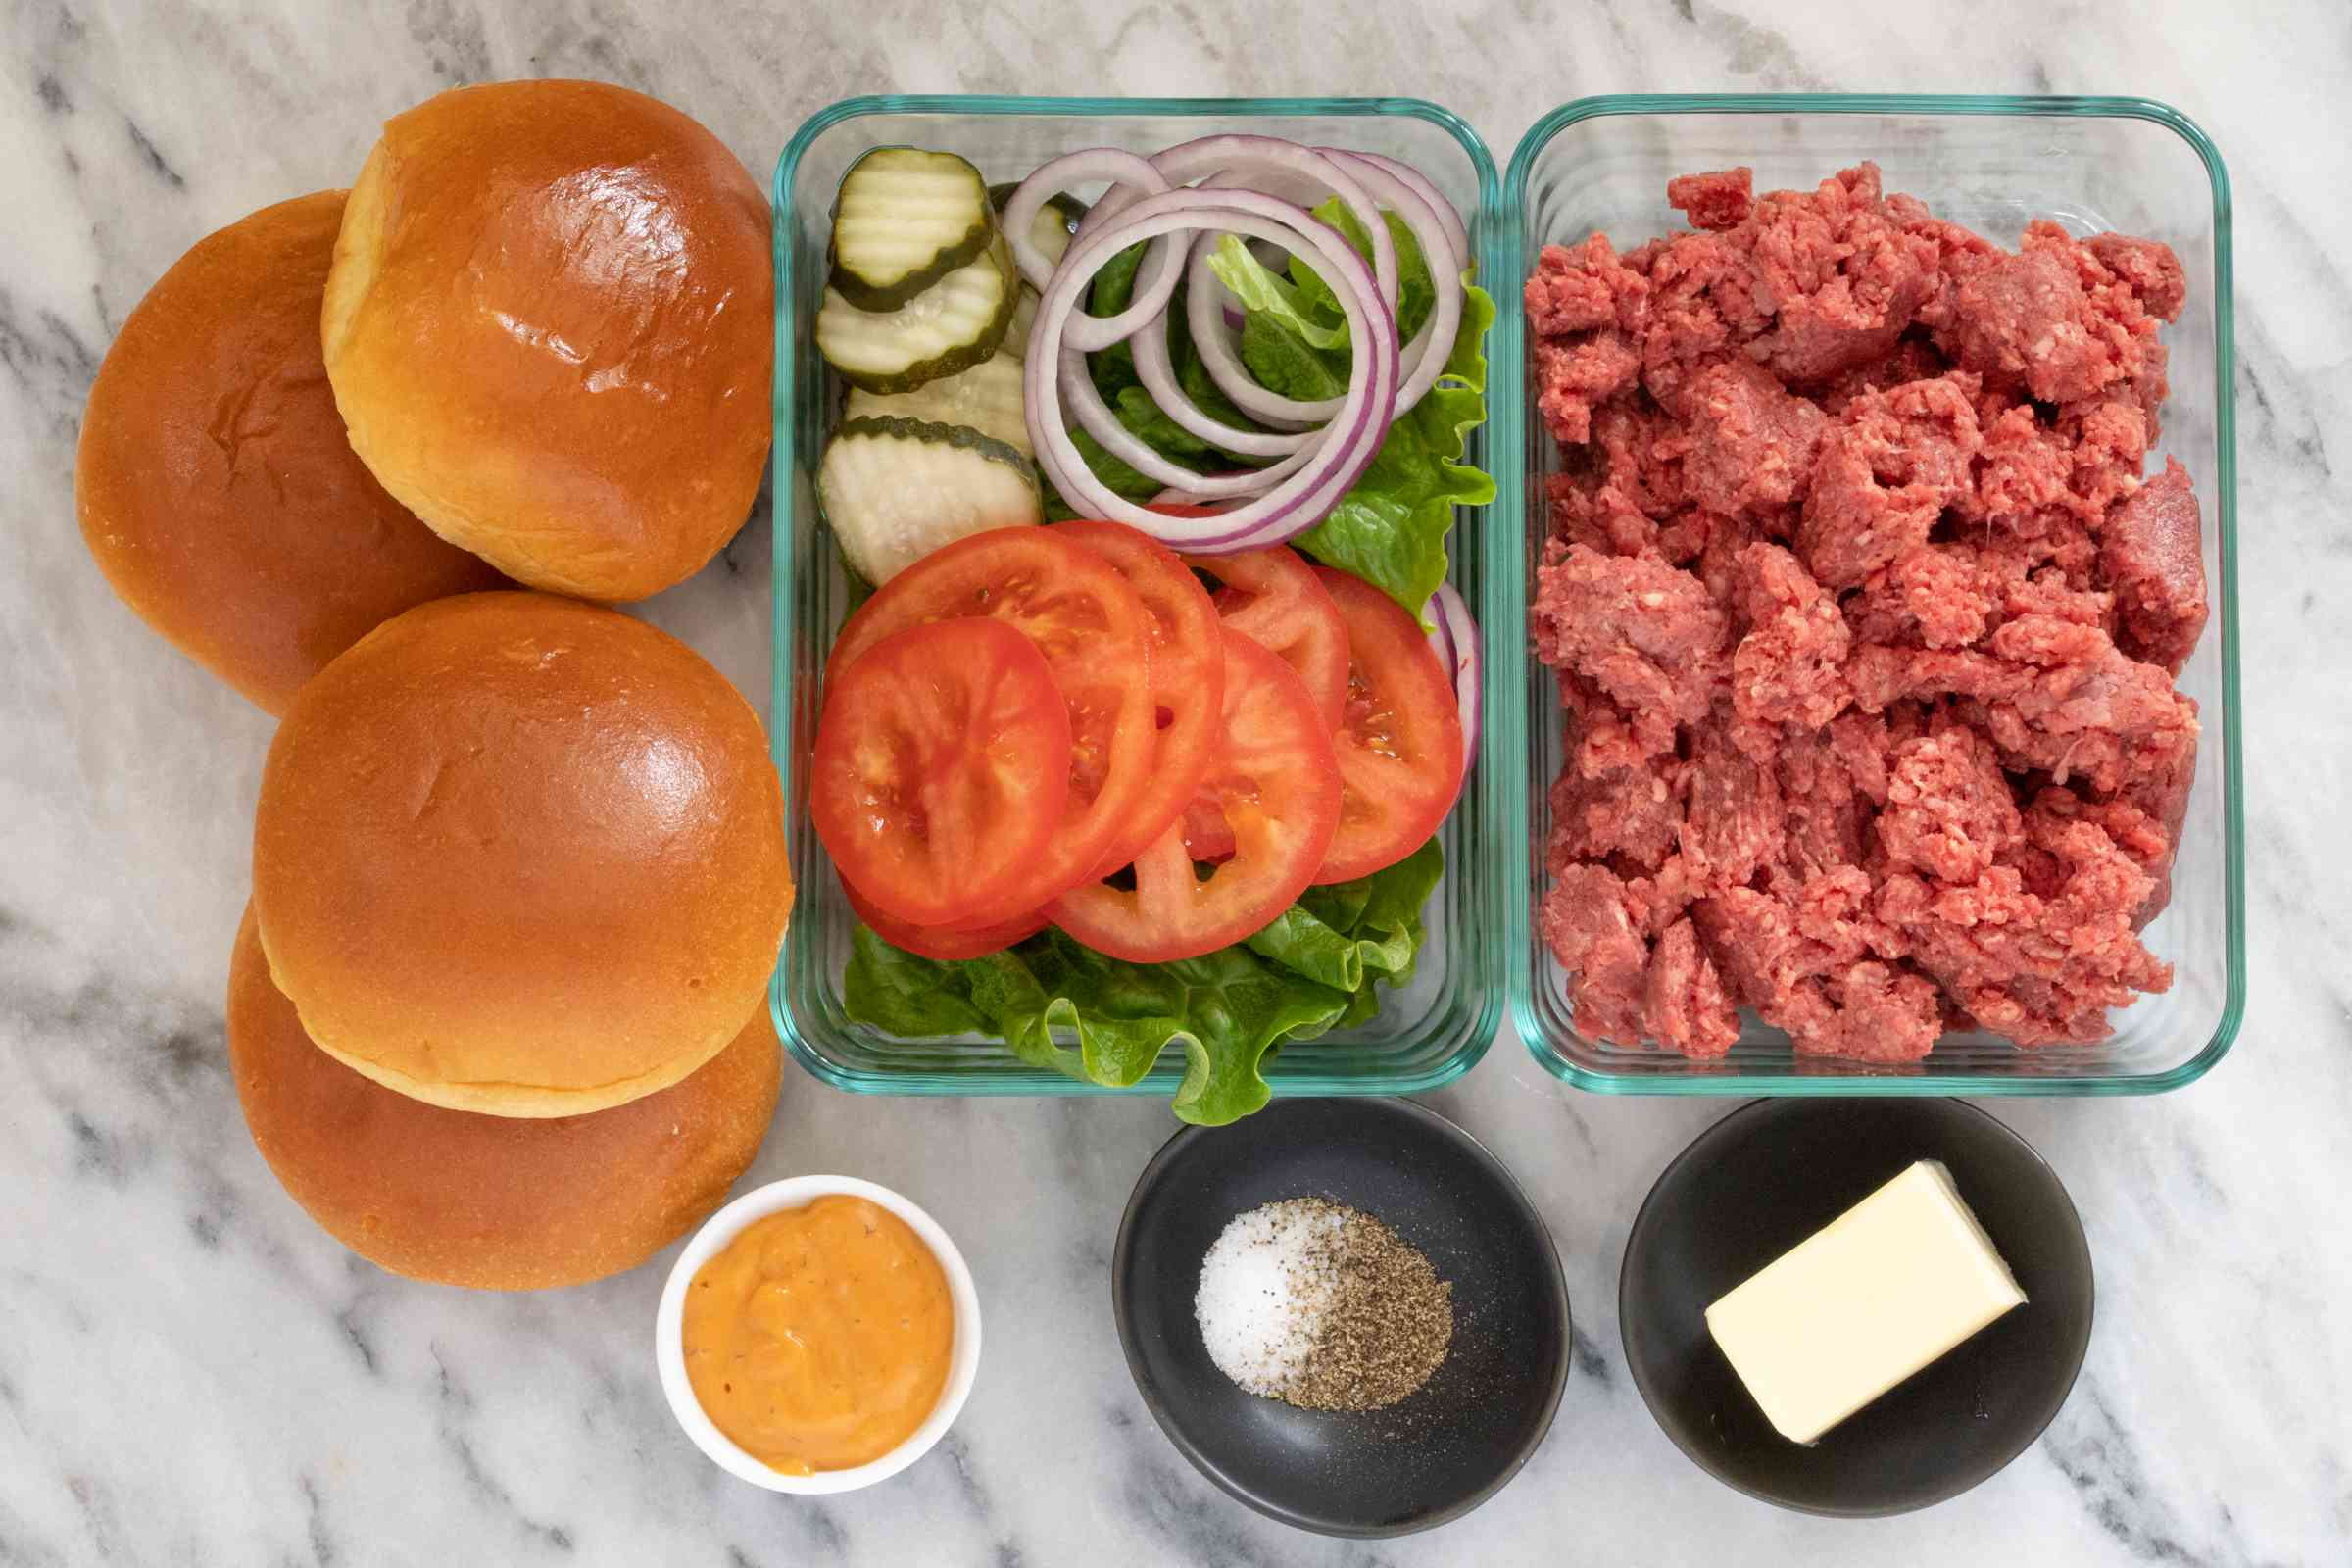 Ingredients for bison burgers plus optional toppings.